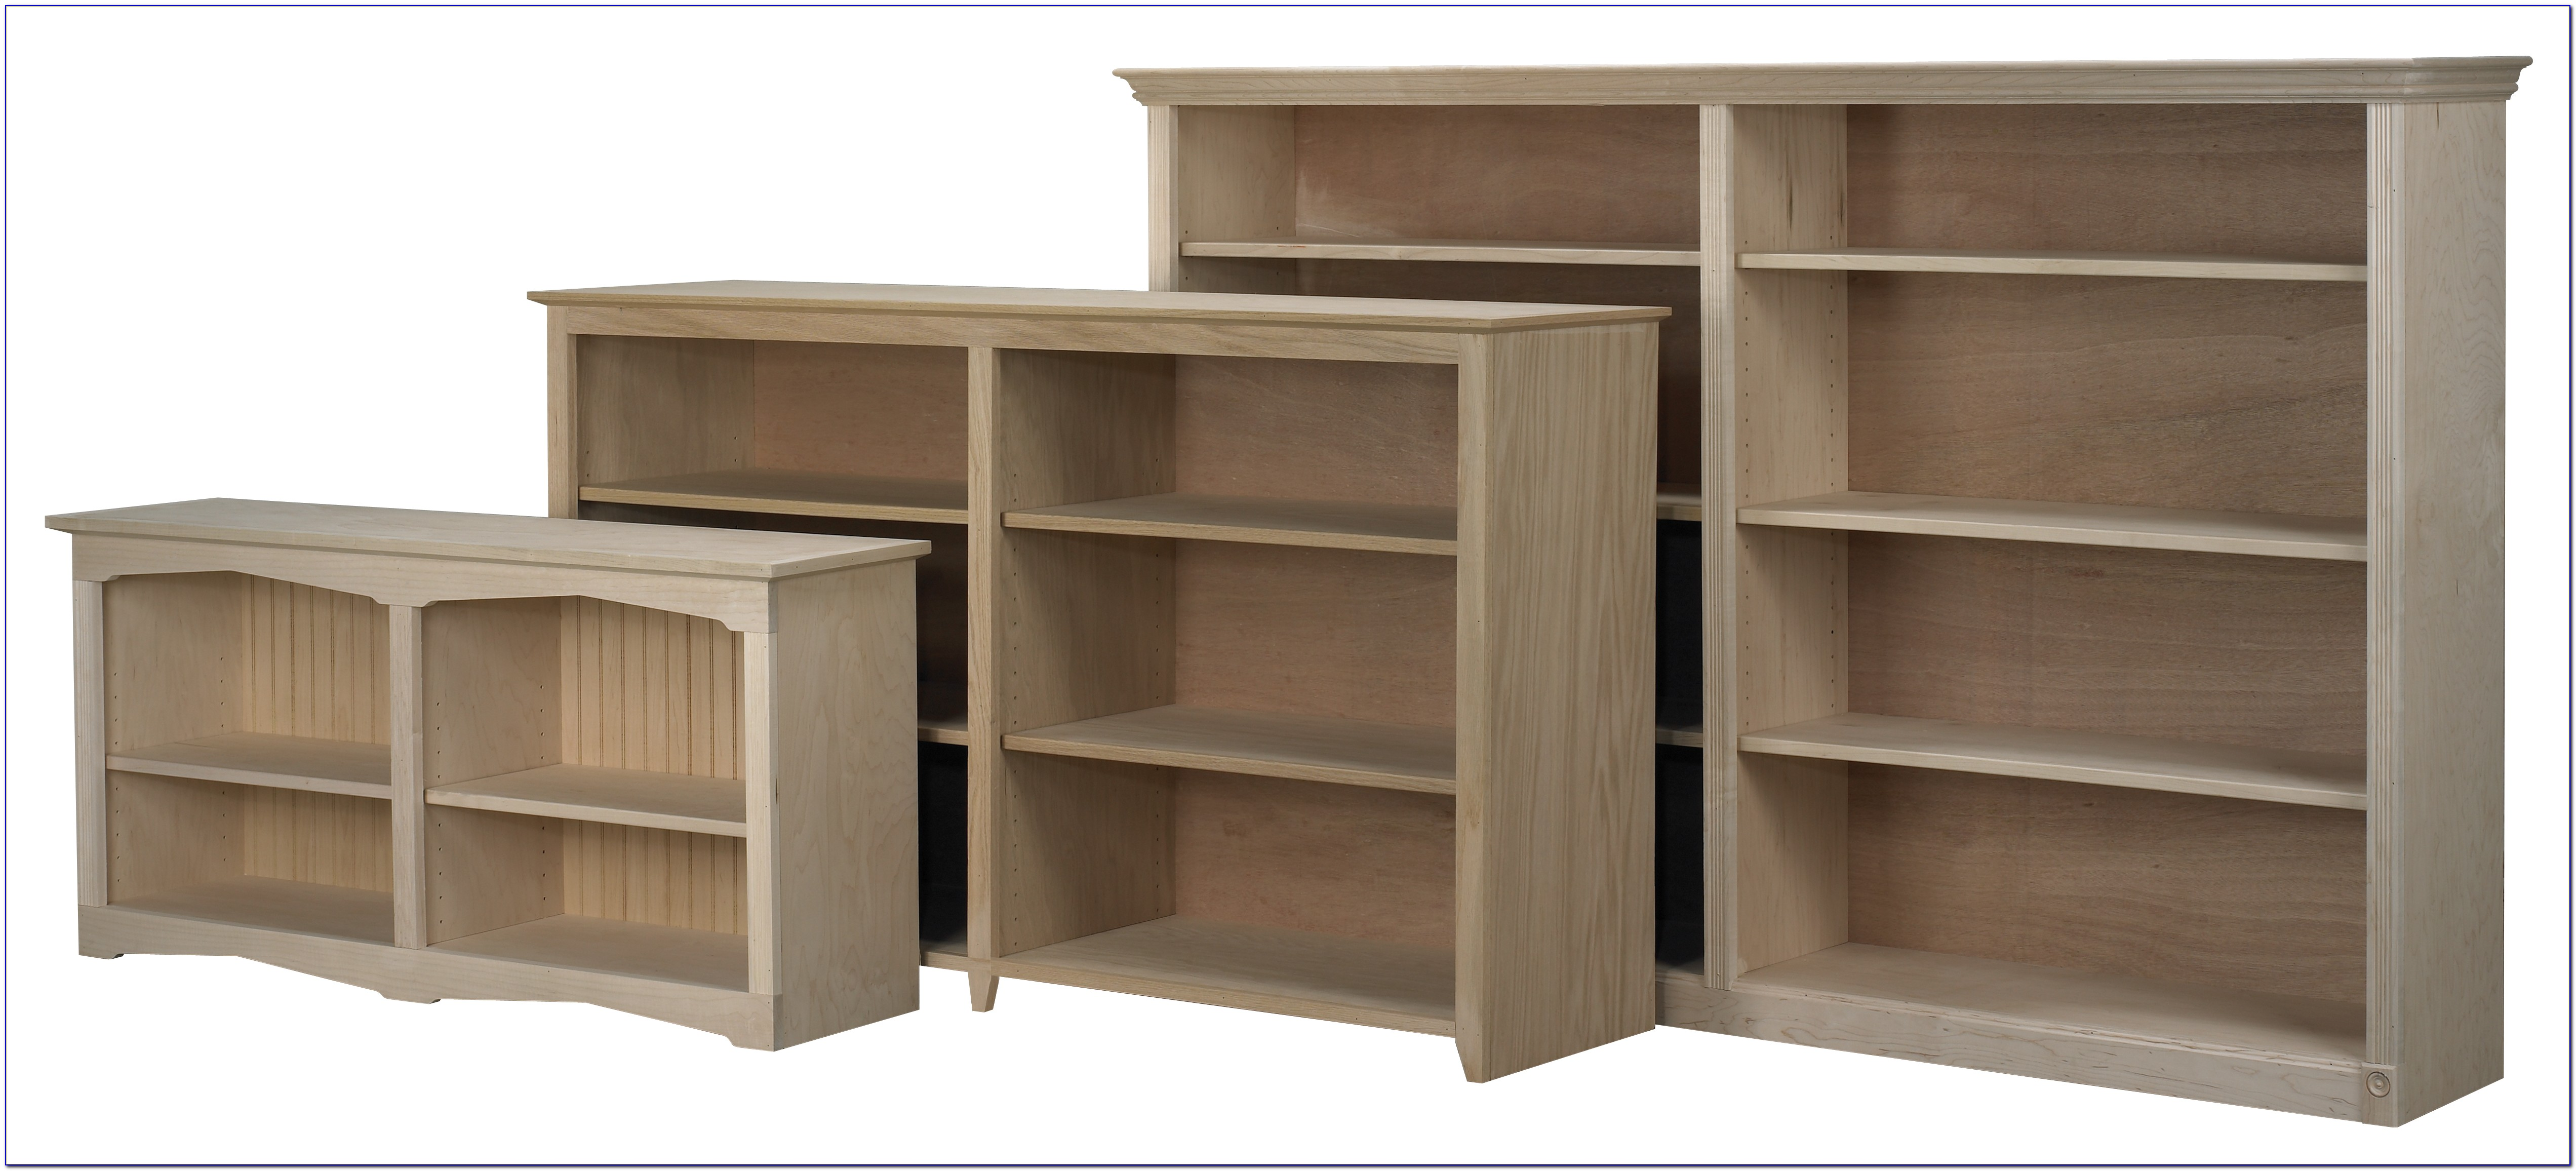 Extra Wide Bookcase Shelves